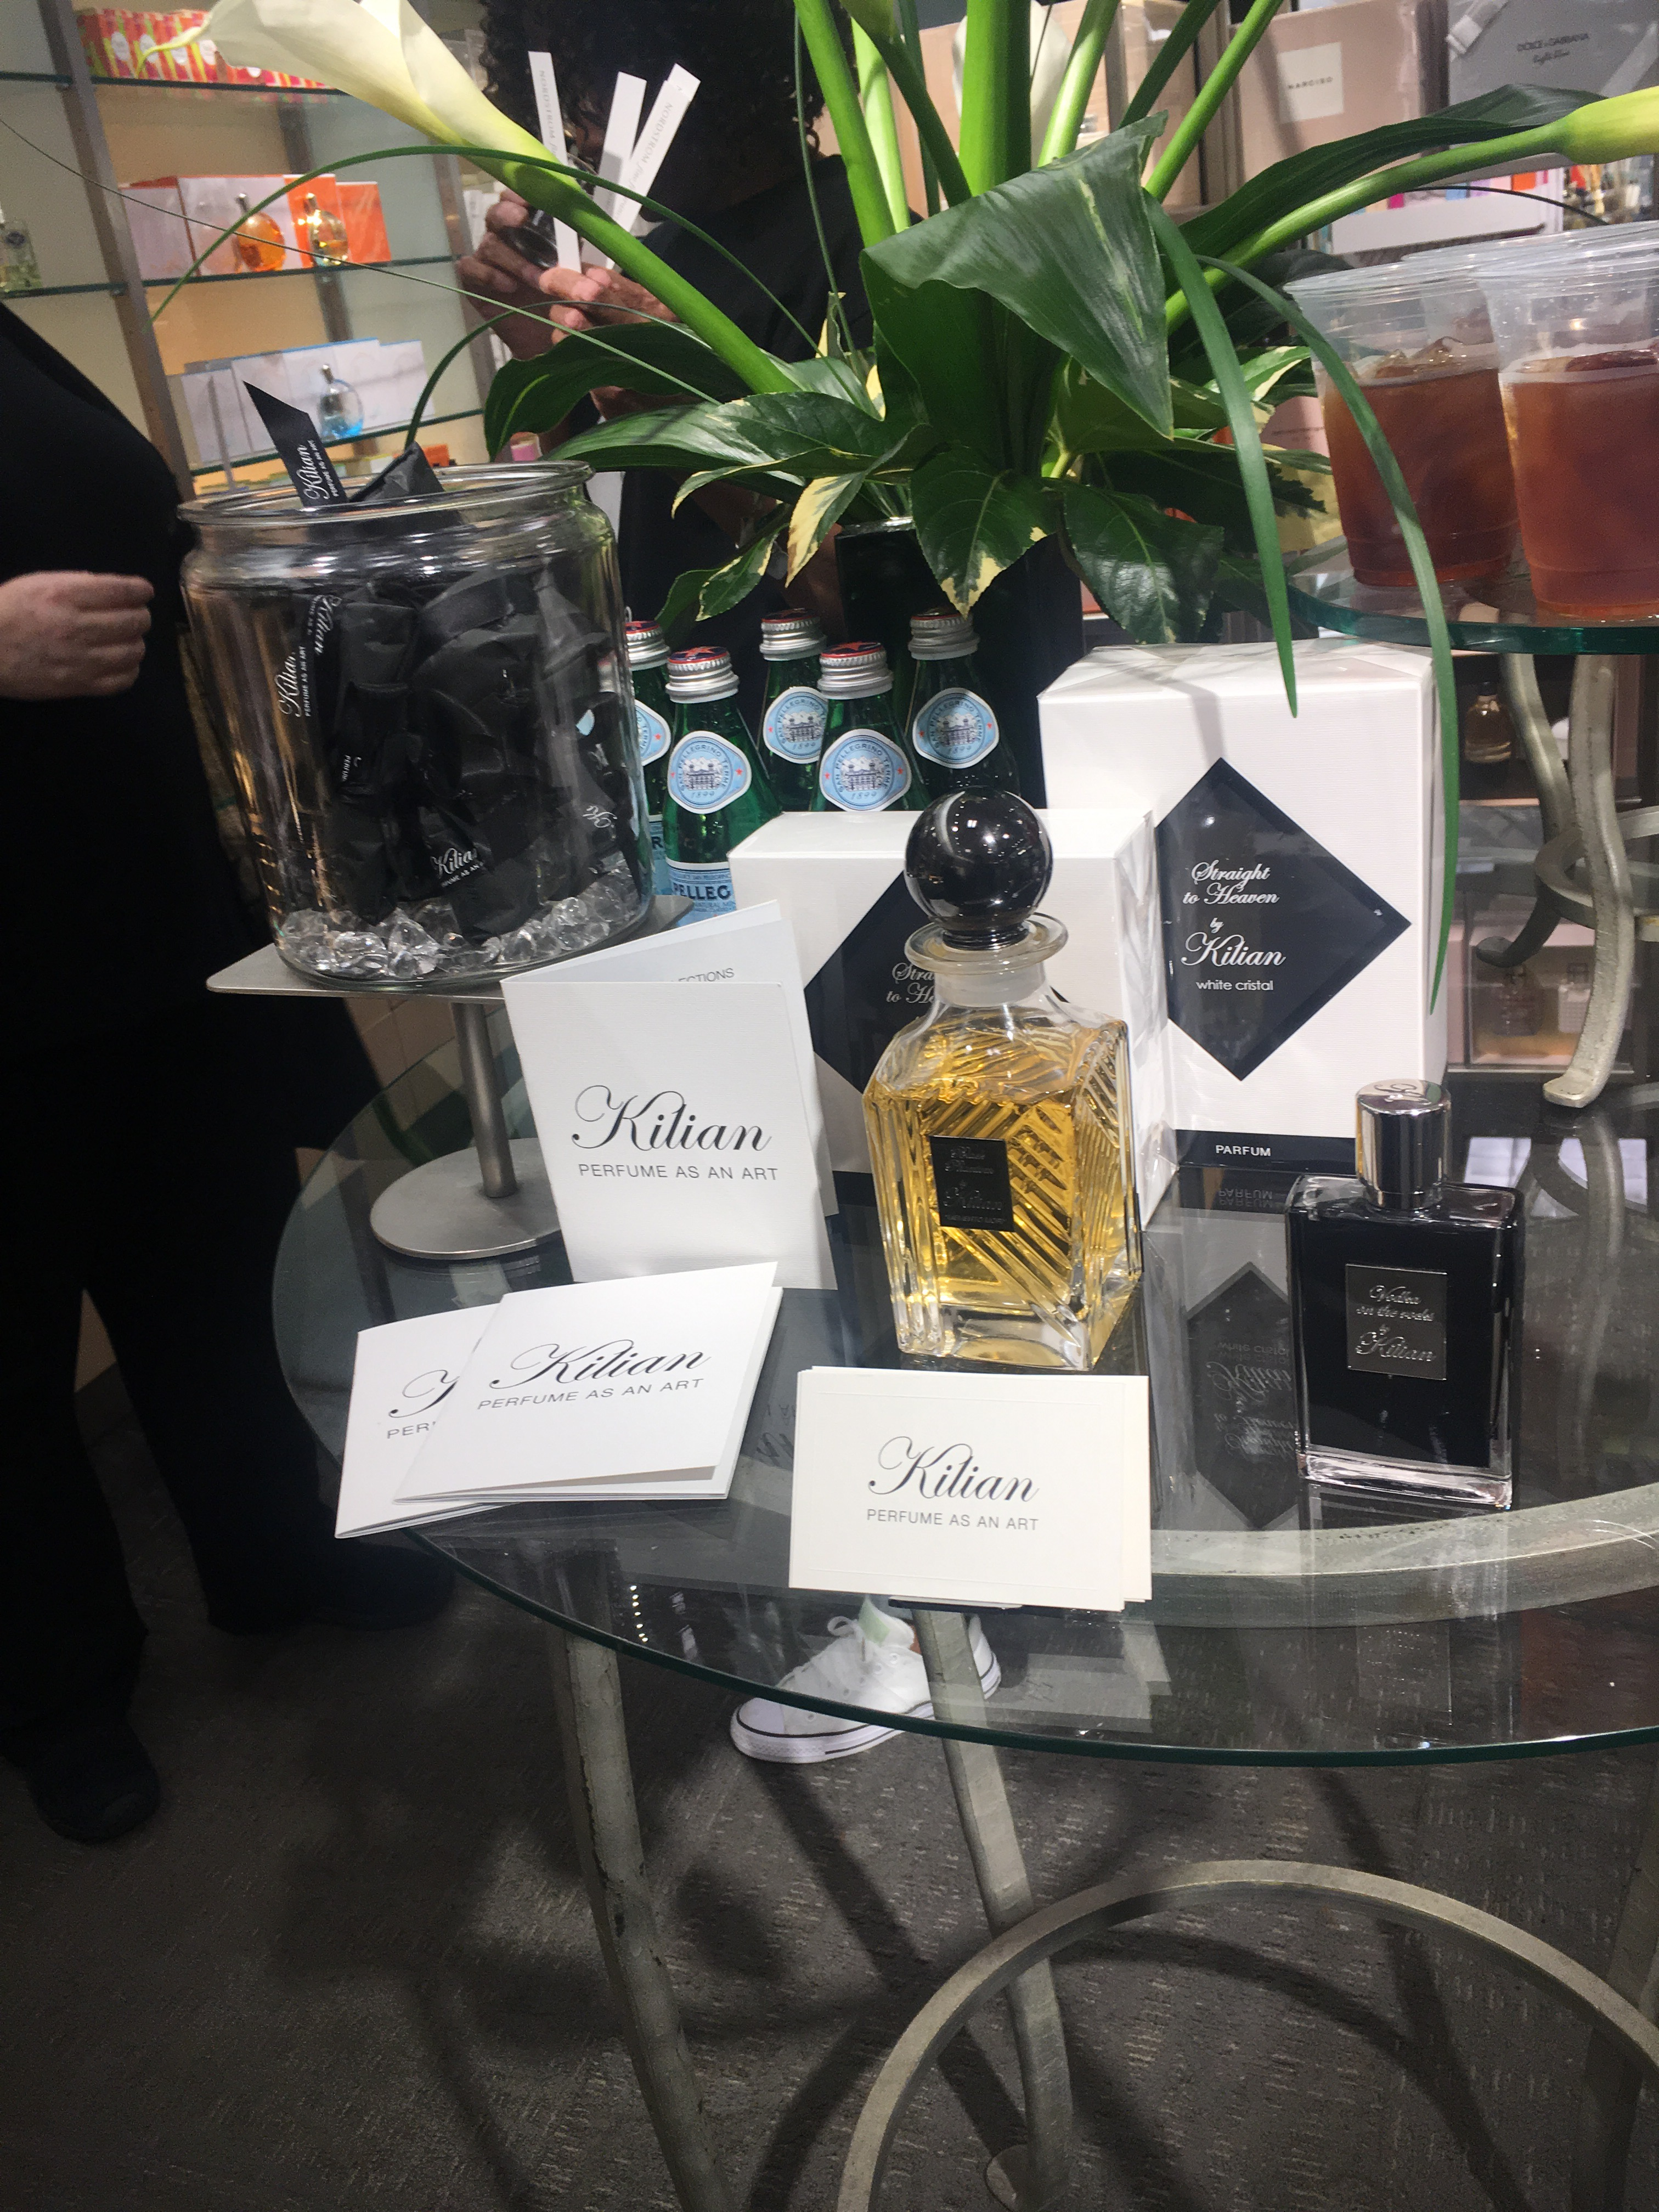 Bottle Poppin And Fragrance Shoppin Nordstroms Coffee To Parfum Mafia I Was Introduced A Brand Wasnt Familiar With Kilian Perfume As An Art Presented Such Luxurious Display Had Investigate